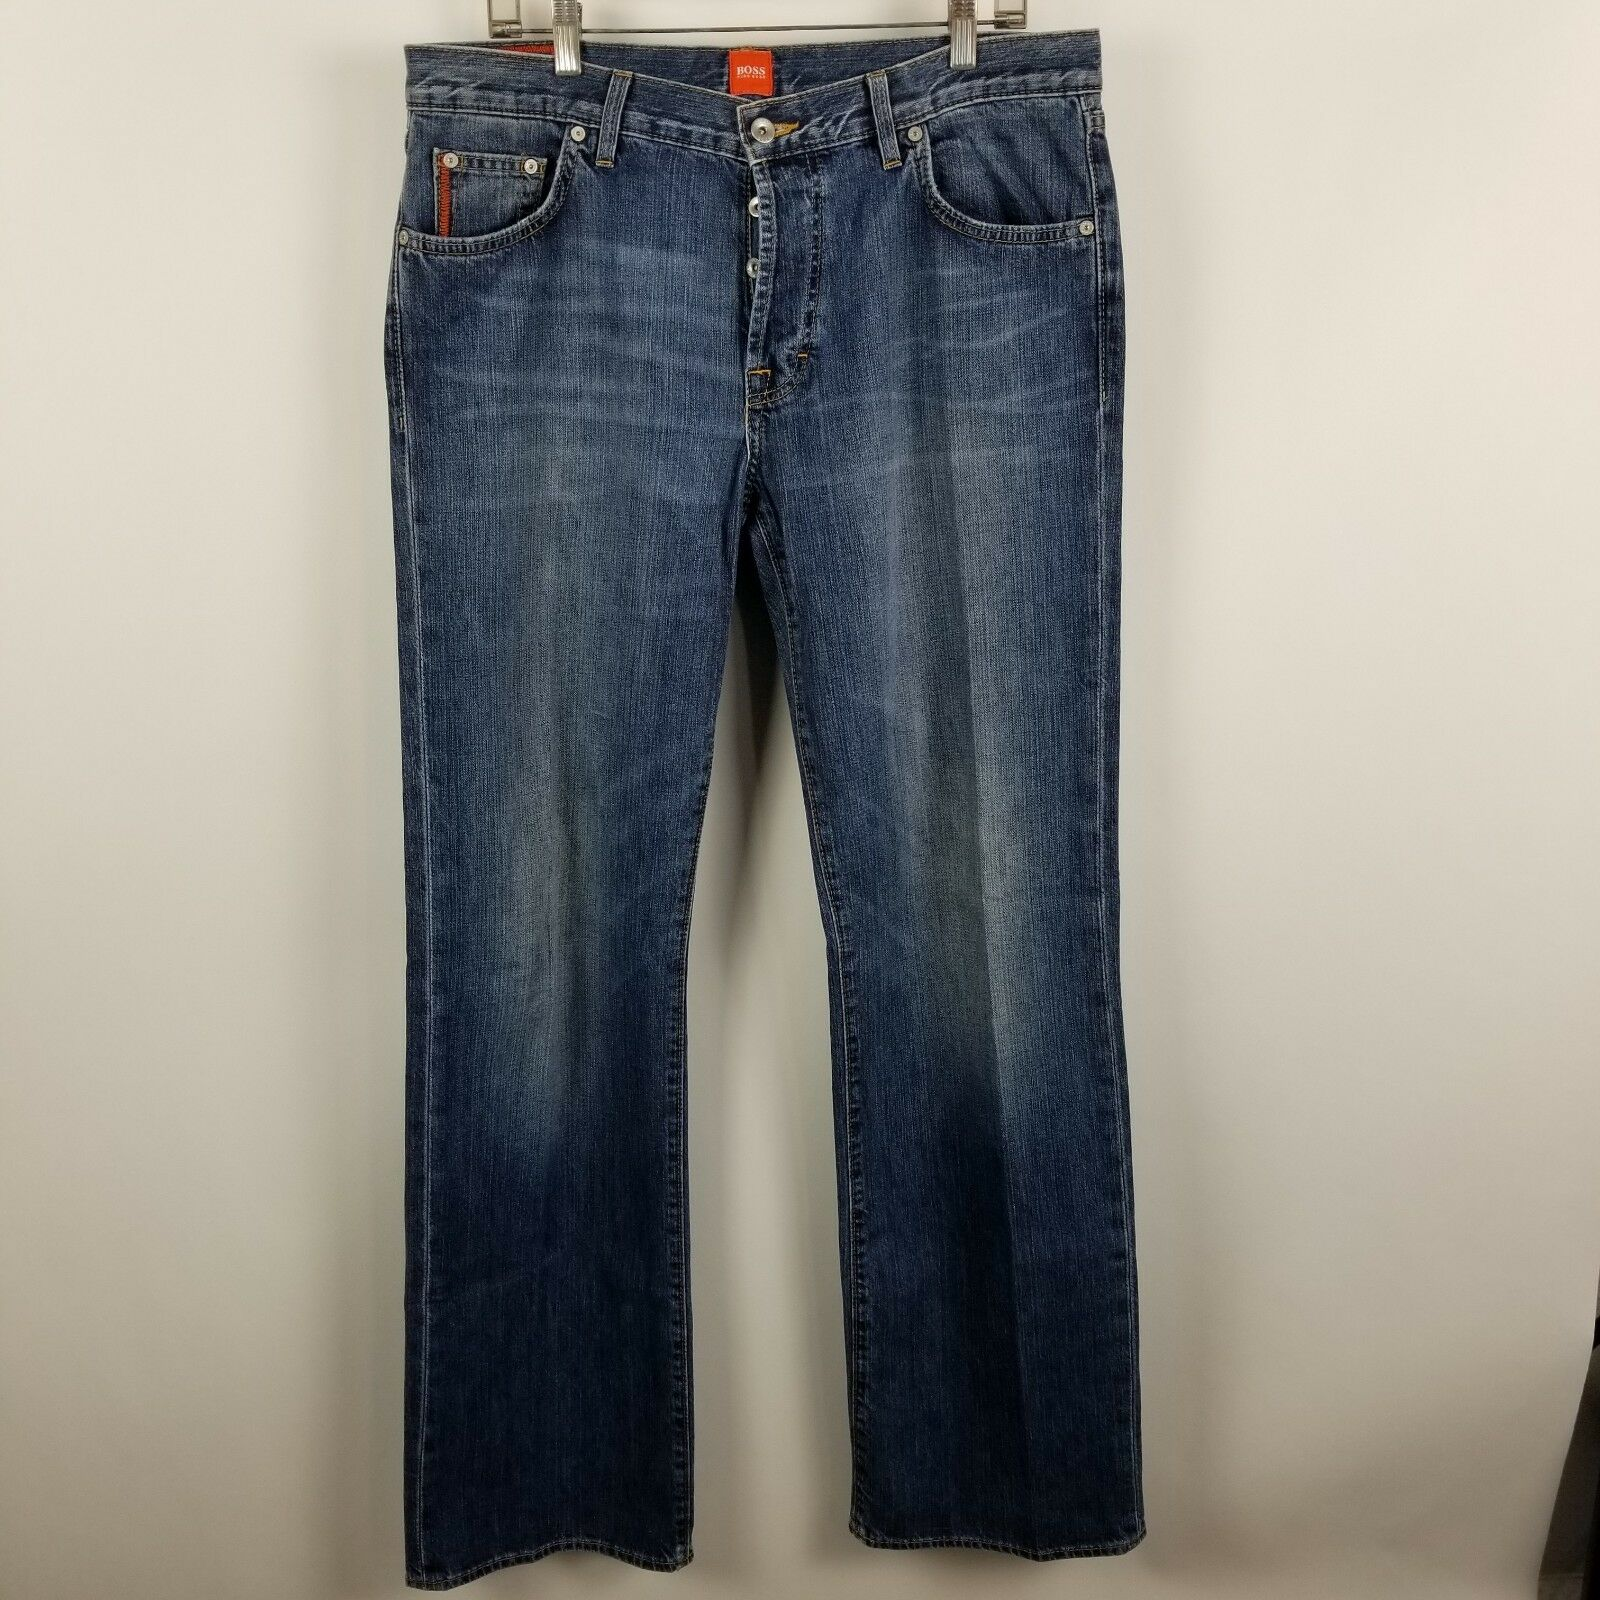 Hugo Boss Relaxed Straight Leg Button Fly Mens bluee Jeans Size 34x34